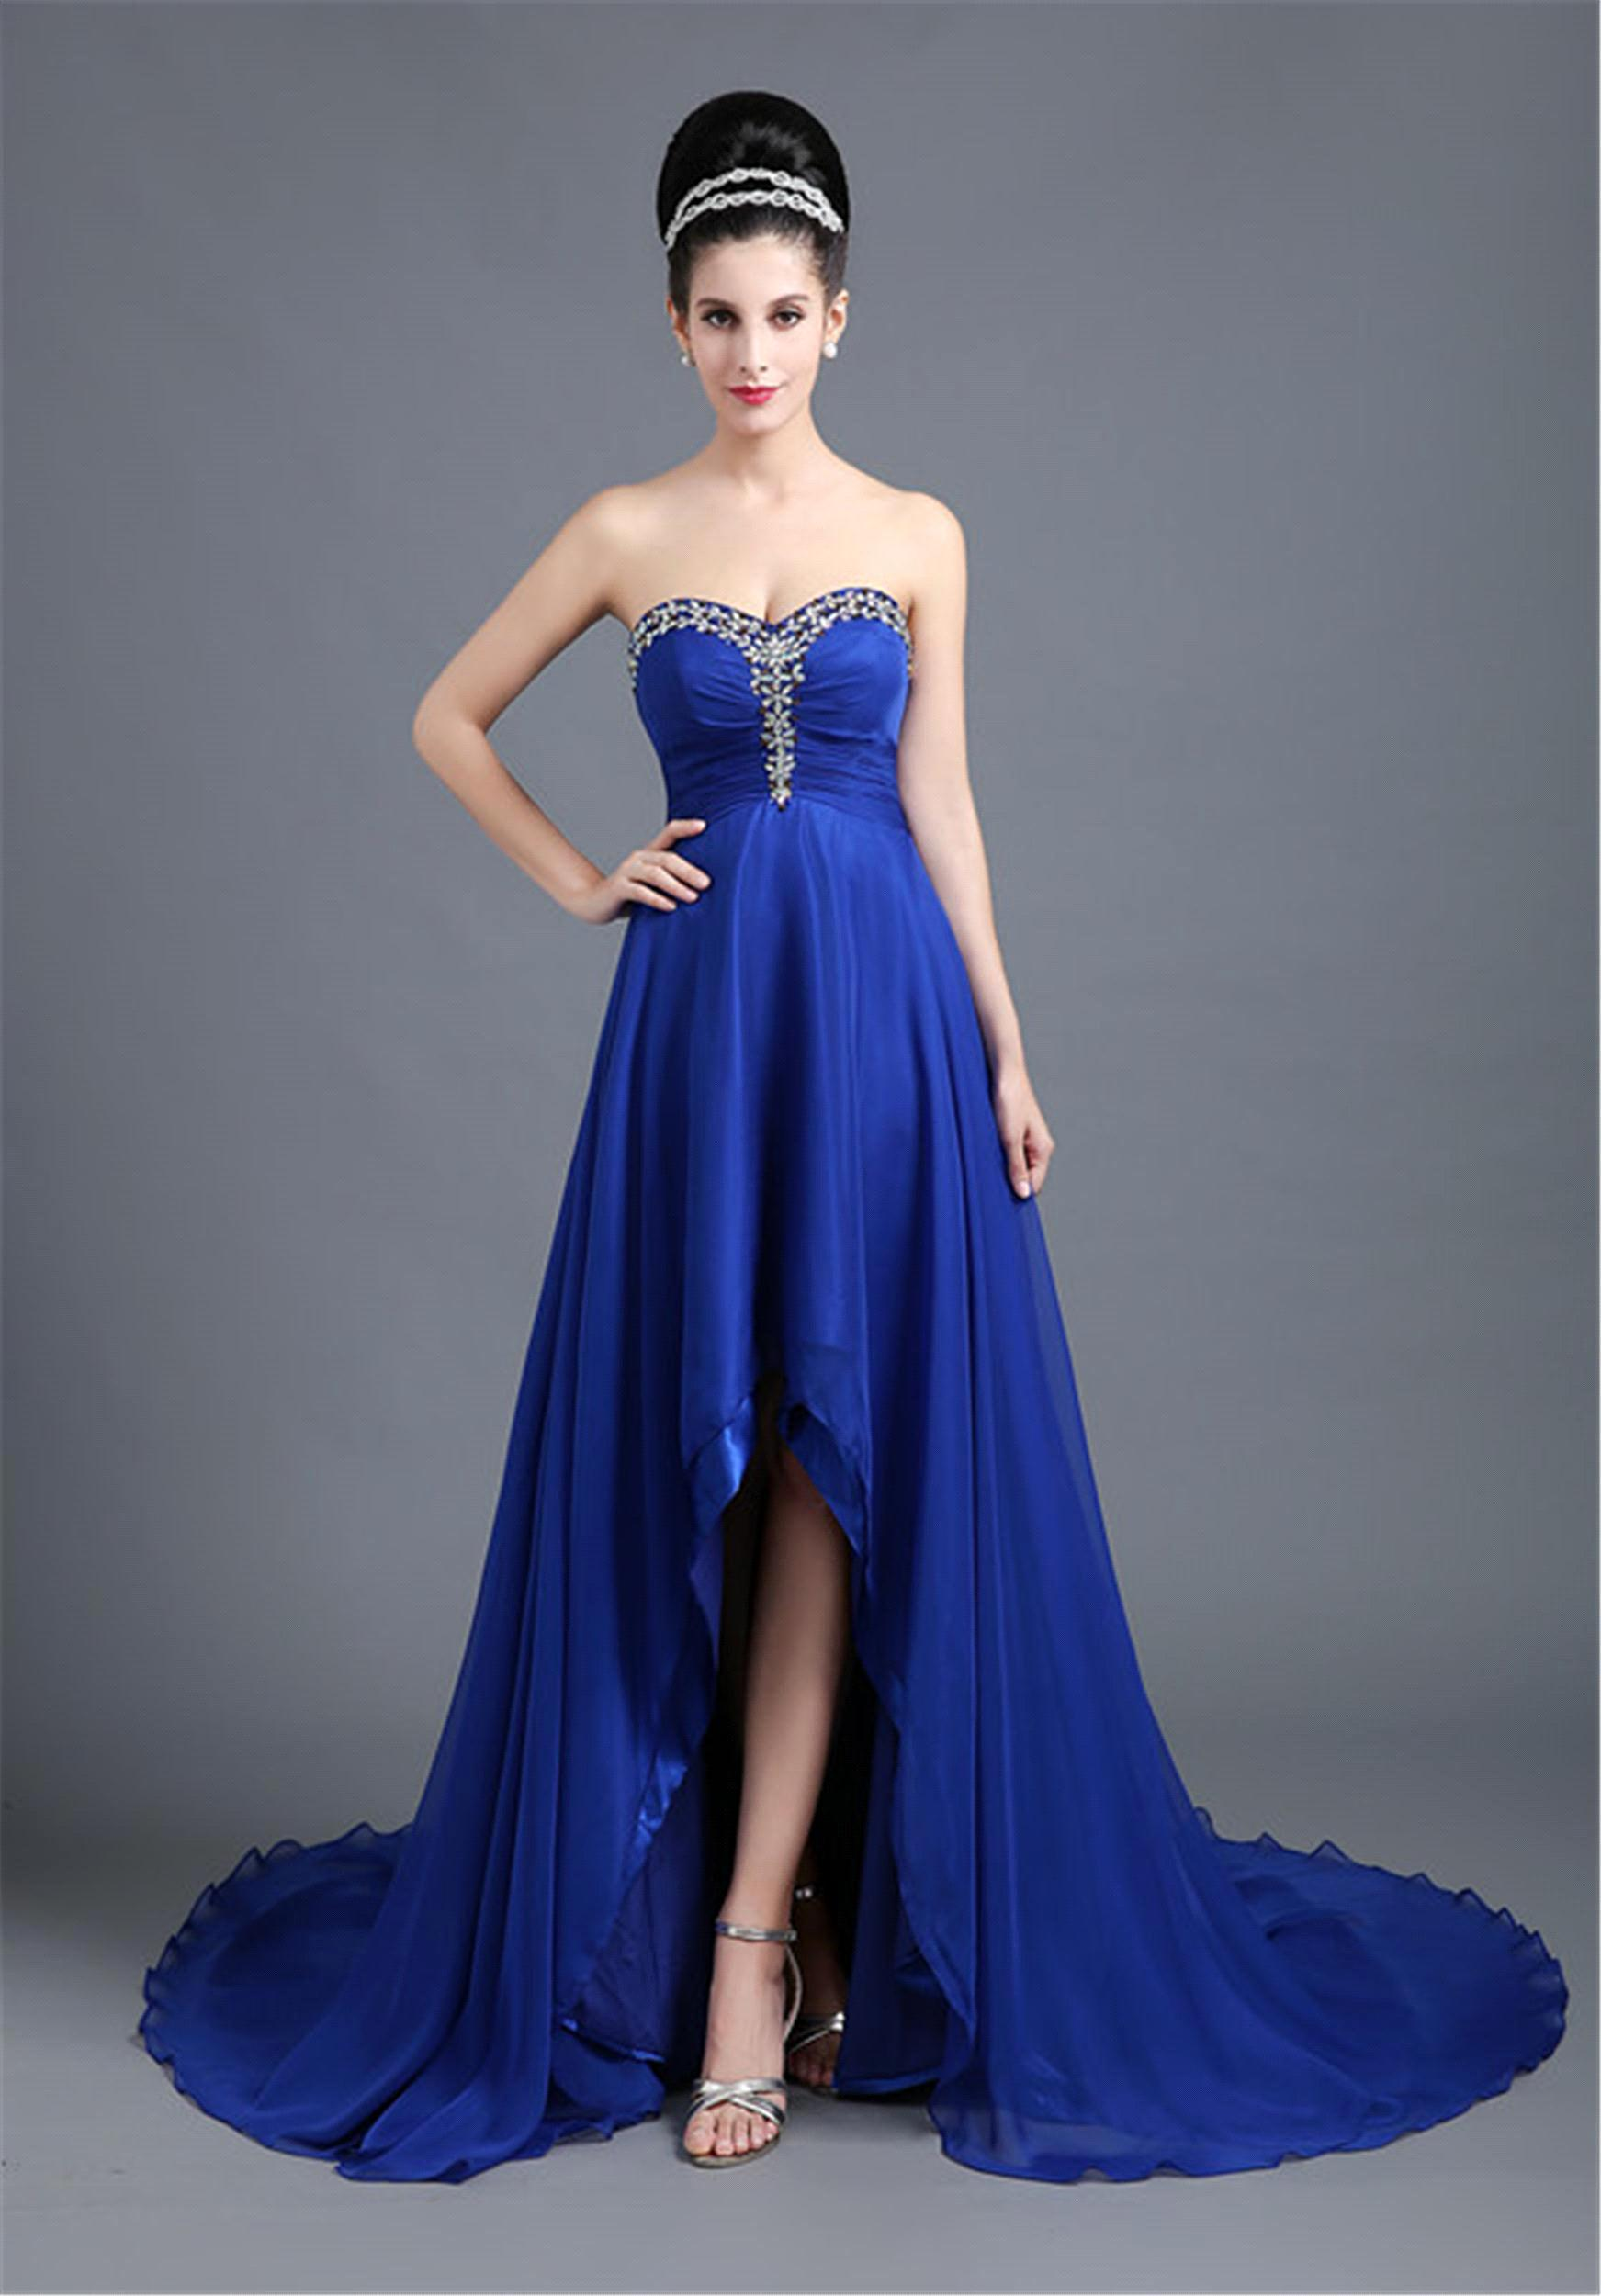 Prom Dresses With Long Back And Short Front - Eligent Prom Dresses